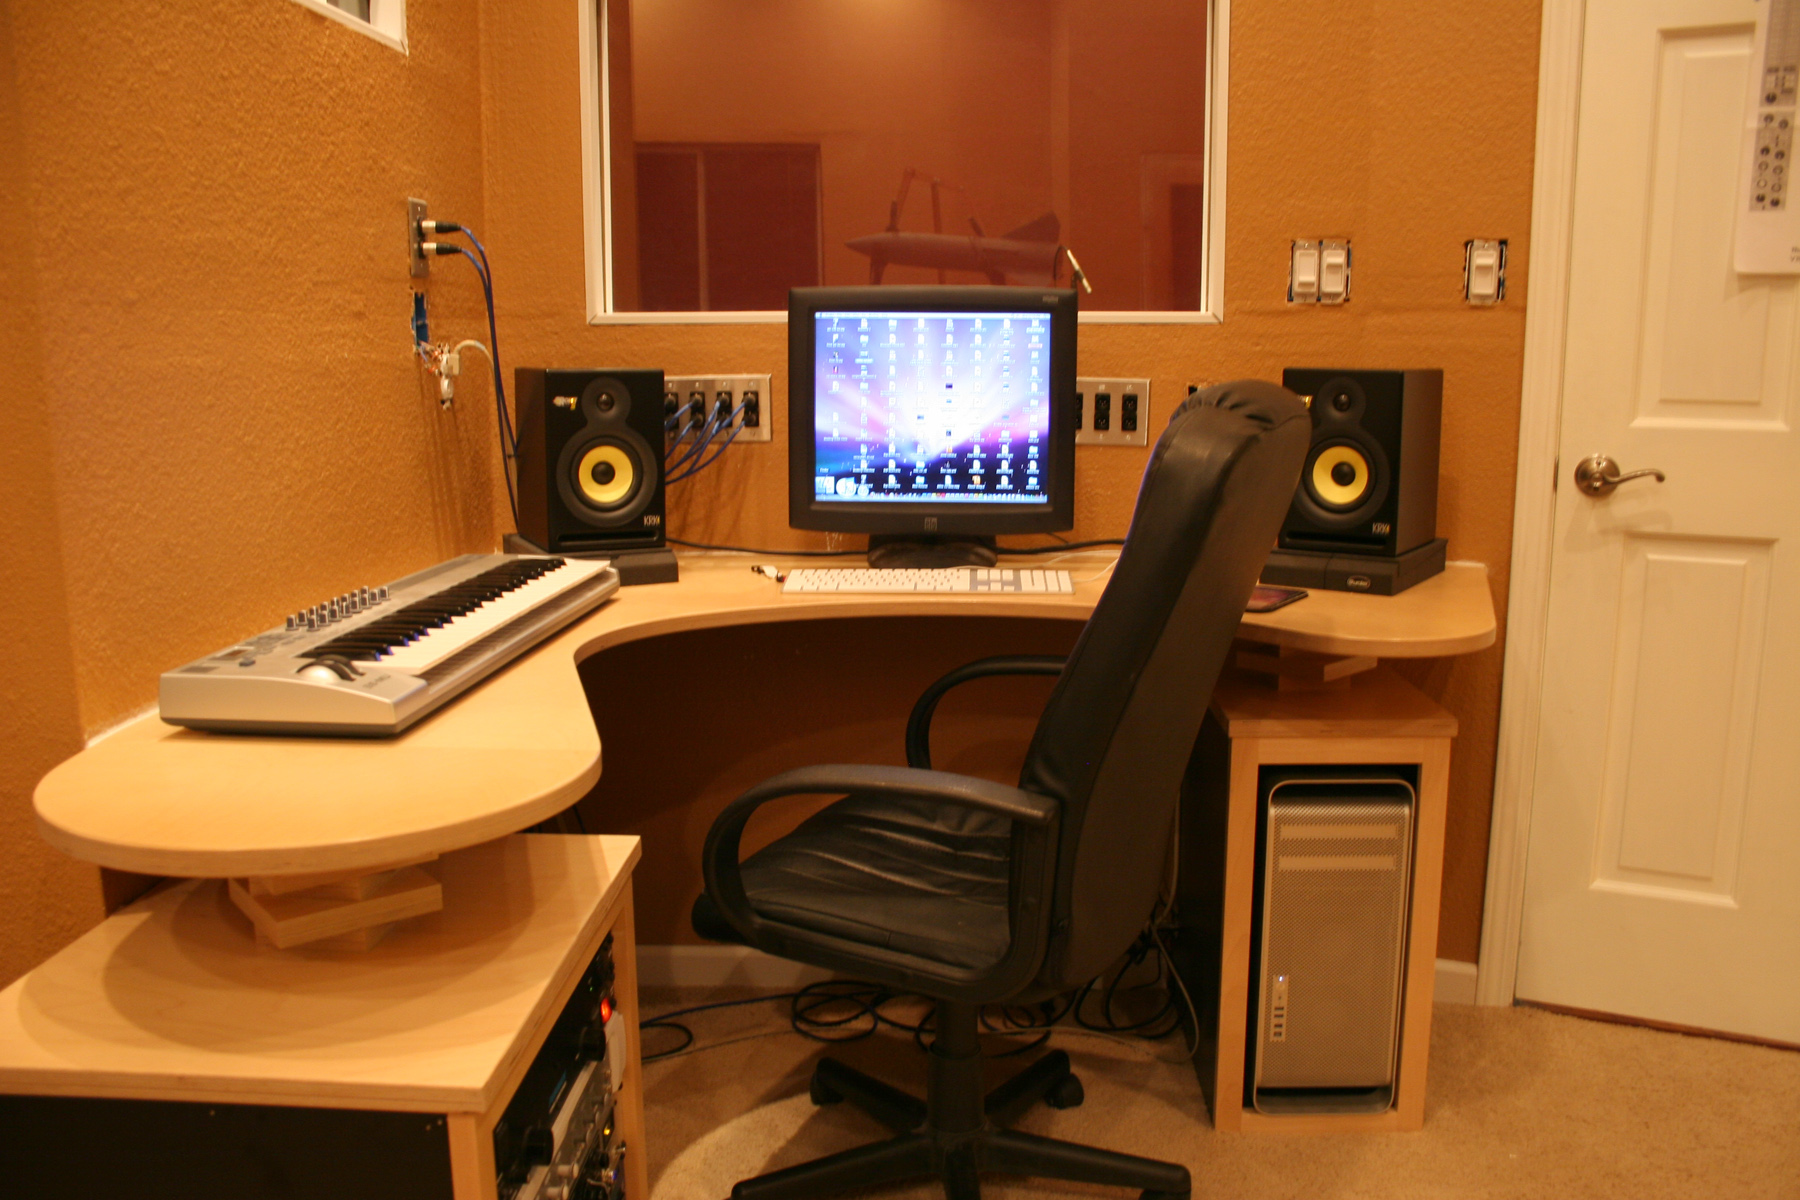 Recording Studio Desk by Ryan Silva at Coroflotcom